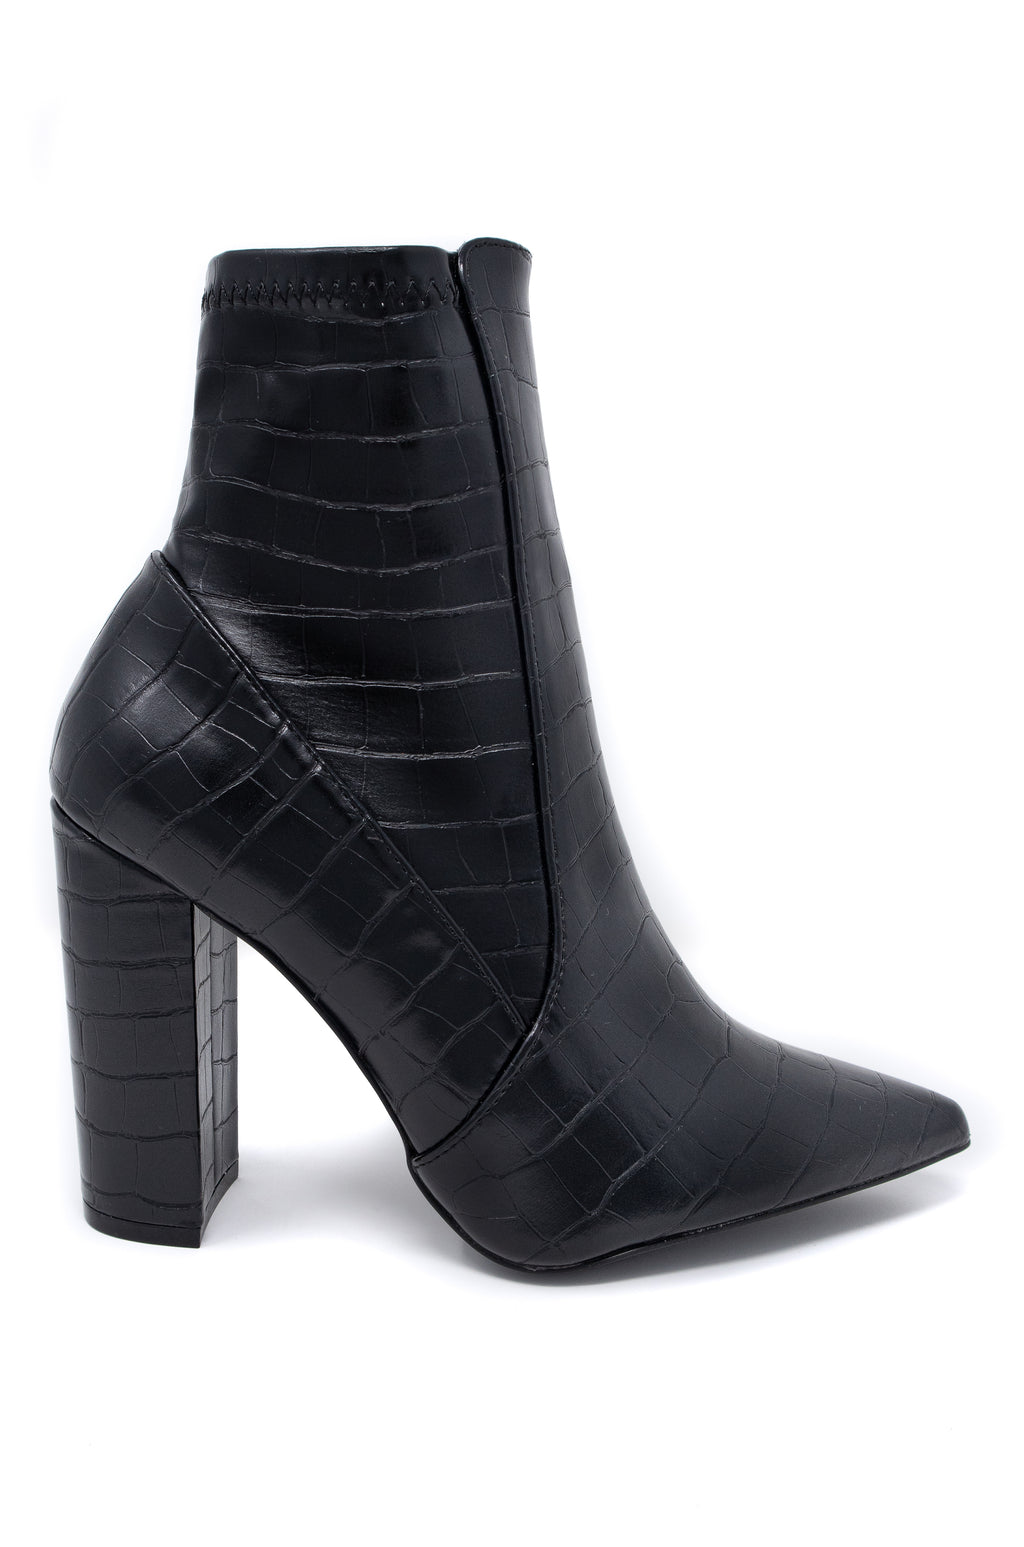 Insta Glam - Black Croco Booties